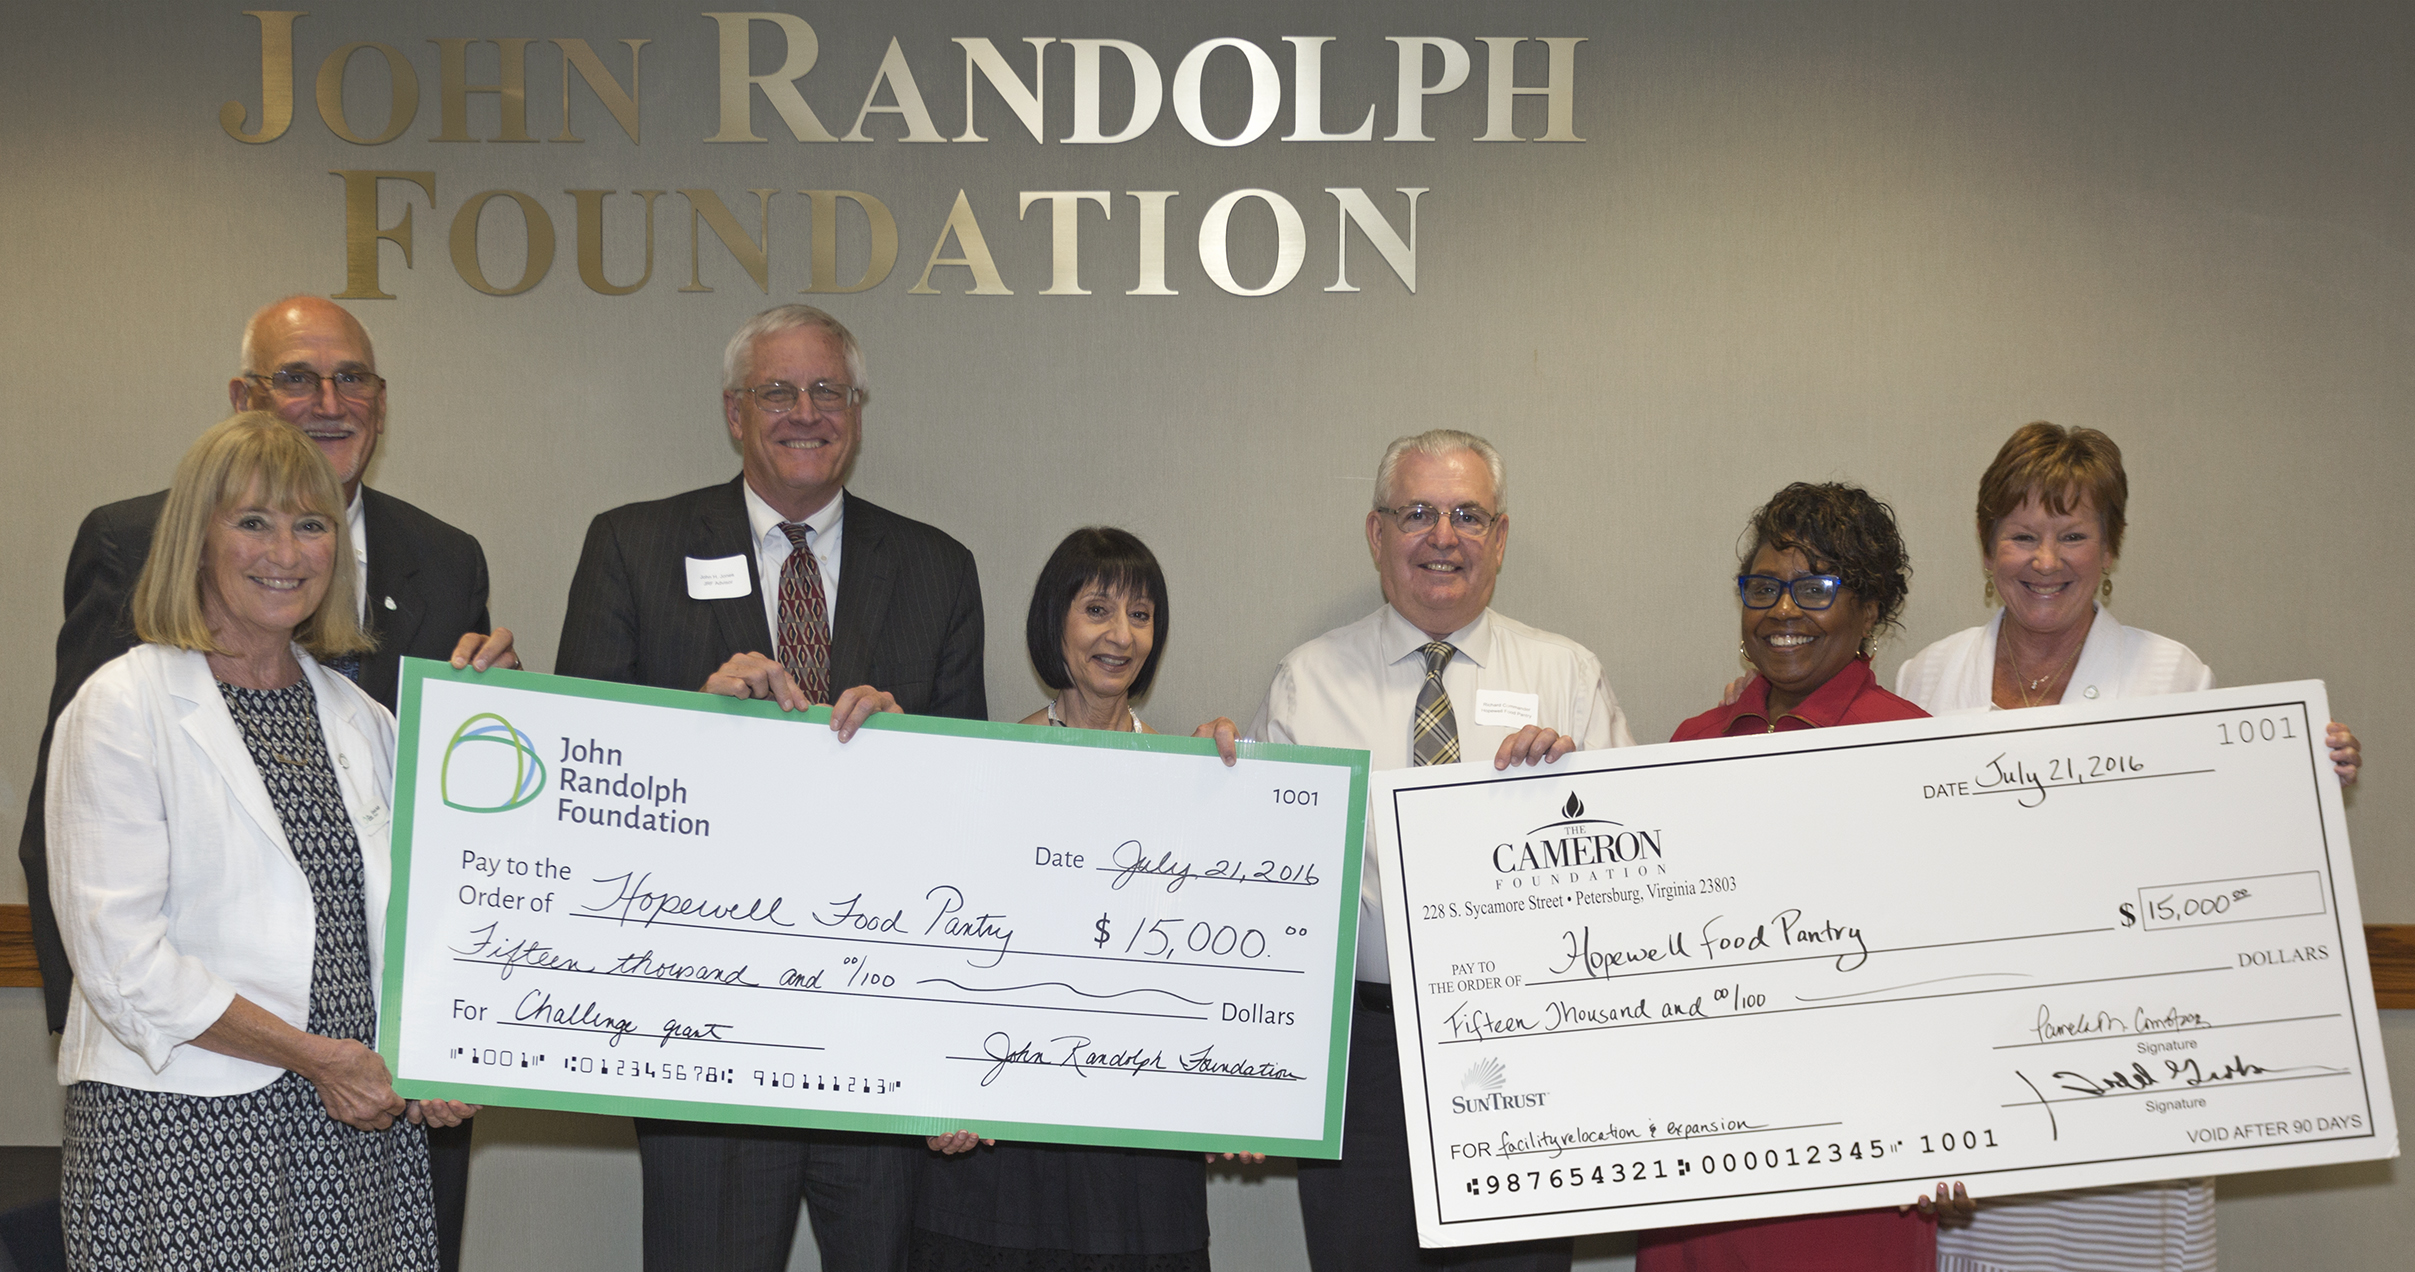 Cameron Foundation and John Randolph Foundation Partner to Give Grant to the Hopewell Food Pantry